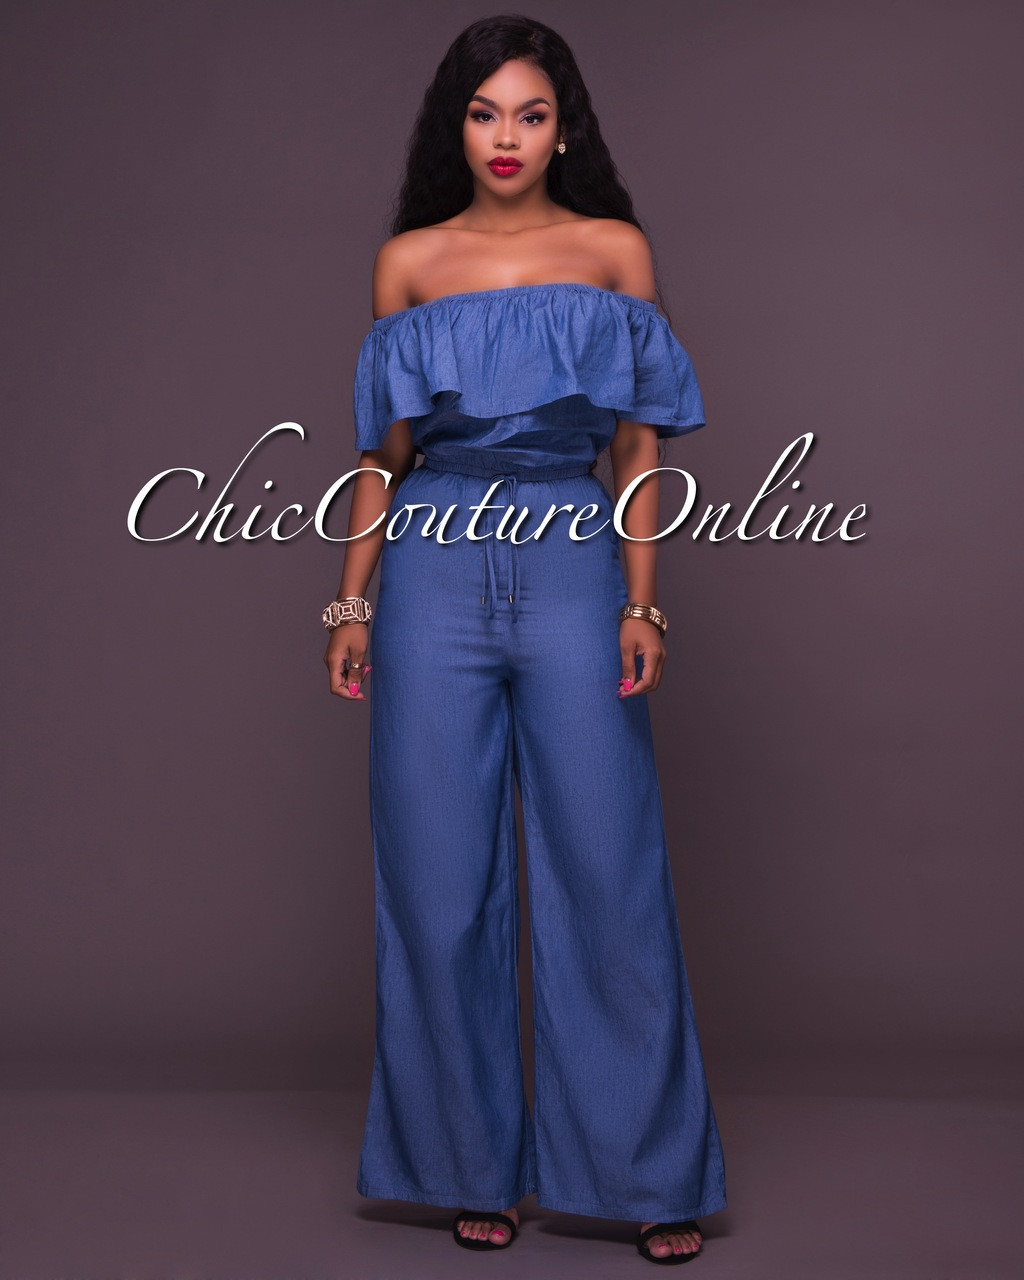 04b5725b434 Cameron Denim Off-The-Shoulder Ruffle Jumpsuit. Price   48.00. Image 1